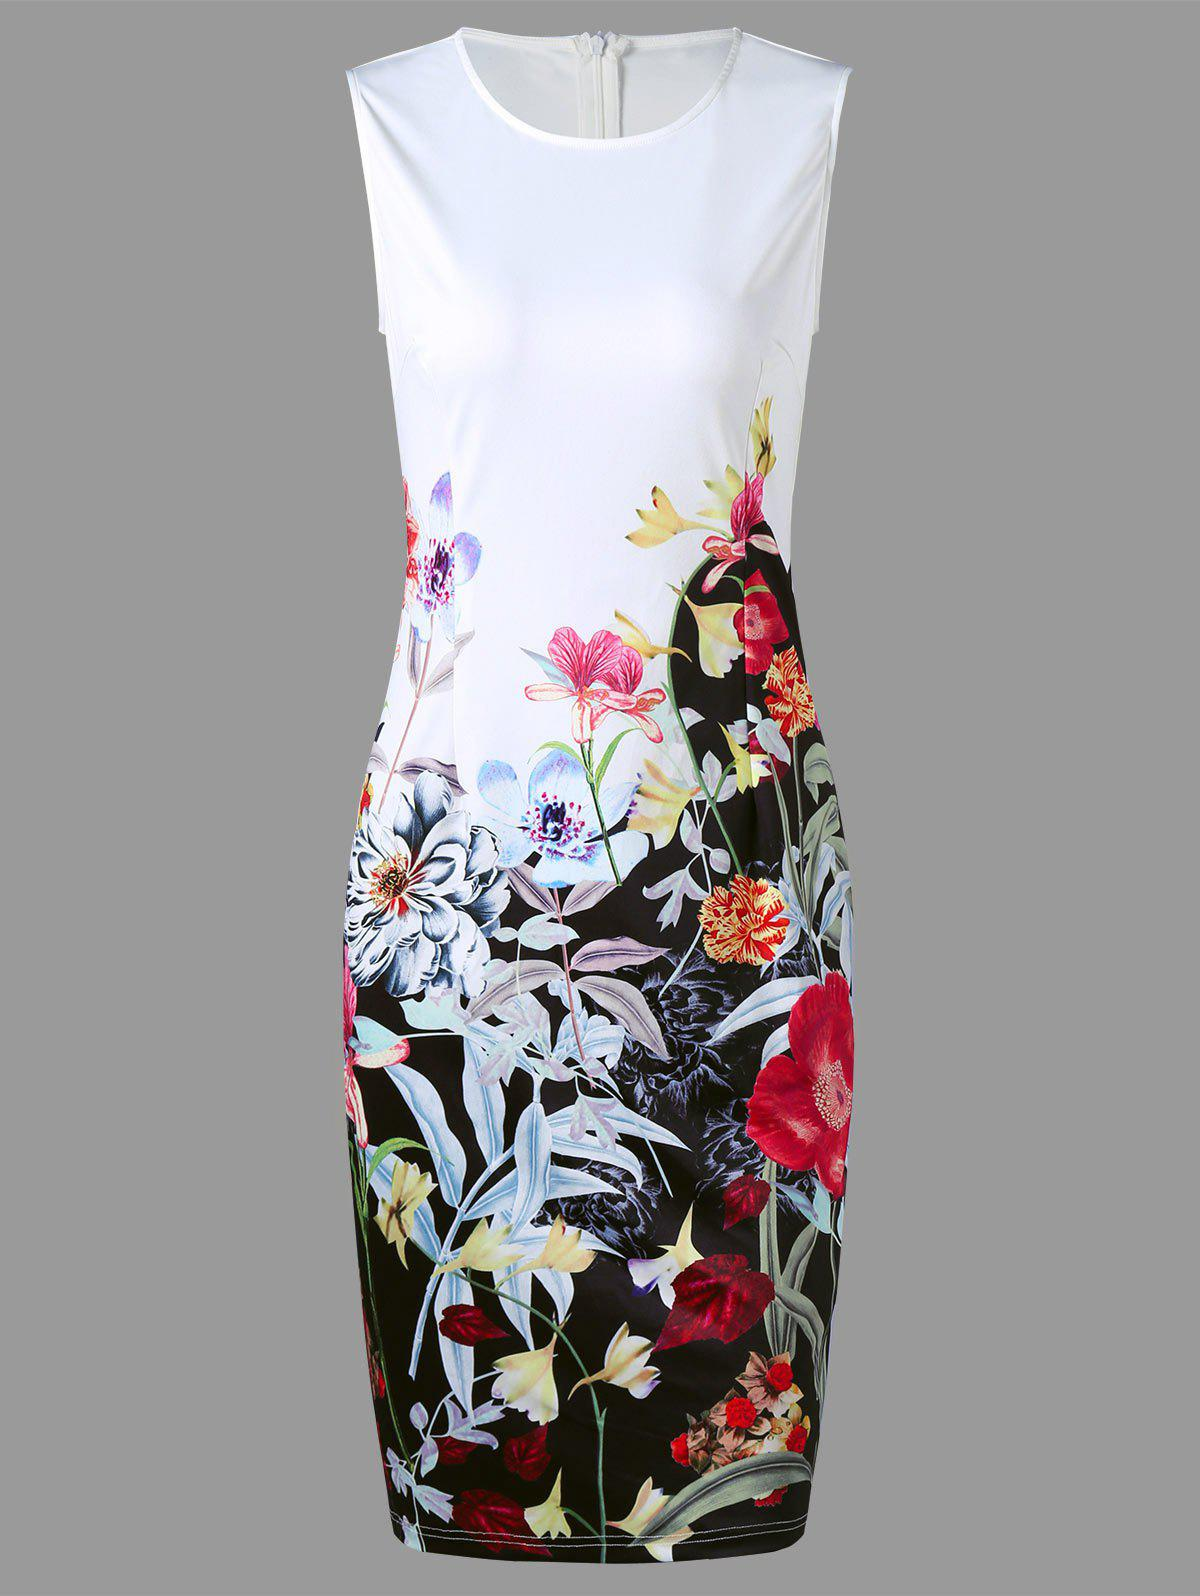 Flower Print Sleeveless Pencil Sheath DressWOMEN<br><br>Size: XL; Color: WHITE; Style: Work; Material: Polyester; Silhouette: Pencil; Dresses Length: Knee-Length; Neckline: Round Collar; Sleeve Length: Sleeveless; Waist: Natural; Pattern Type: Floral,Print; With Belt: No; Season: Summer; Weight: 0.2700kg; Package Contents: 1 x Dress;